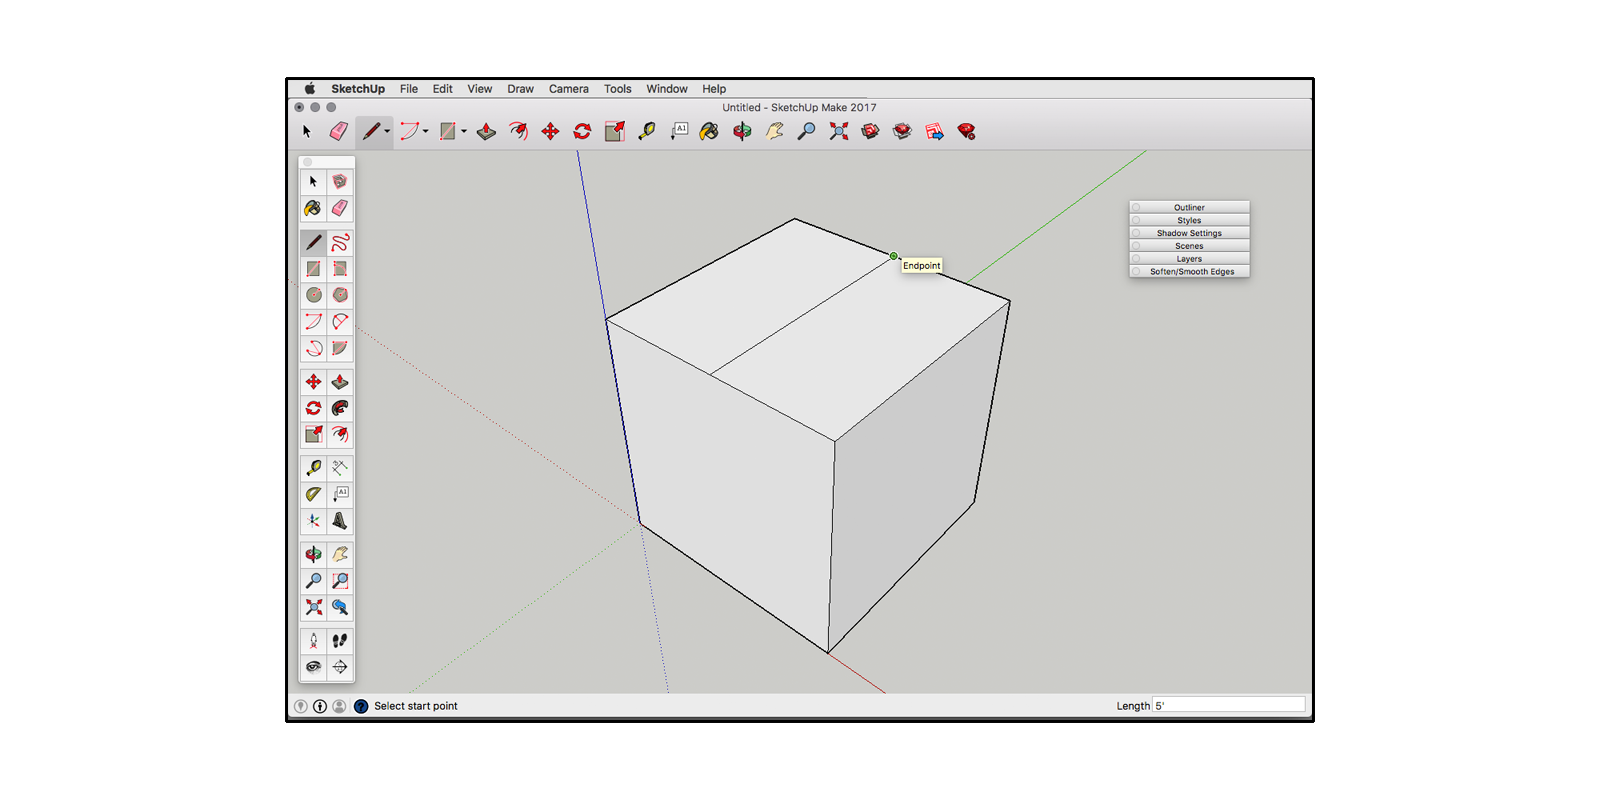 SketchUp Guide: How to Get Started with SketchUp — Evolving